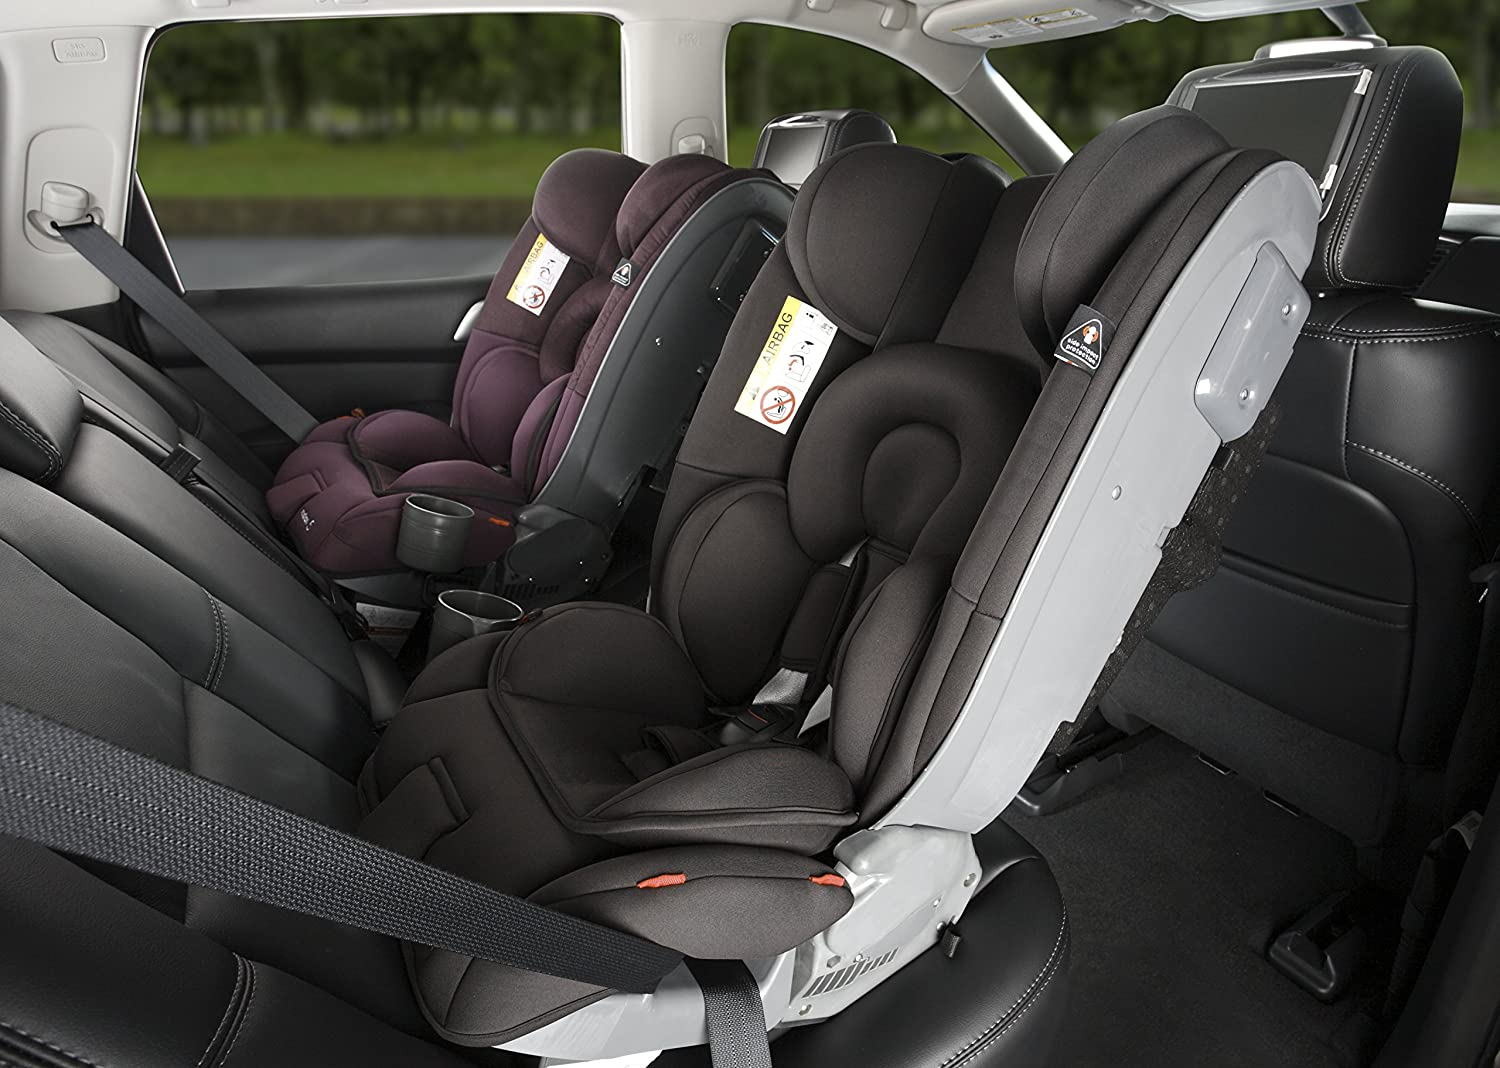 gaixample.org Car Seats & Accessories Baby Products Black Scarlet ...